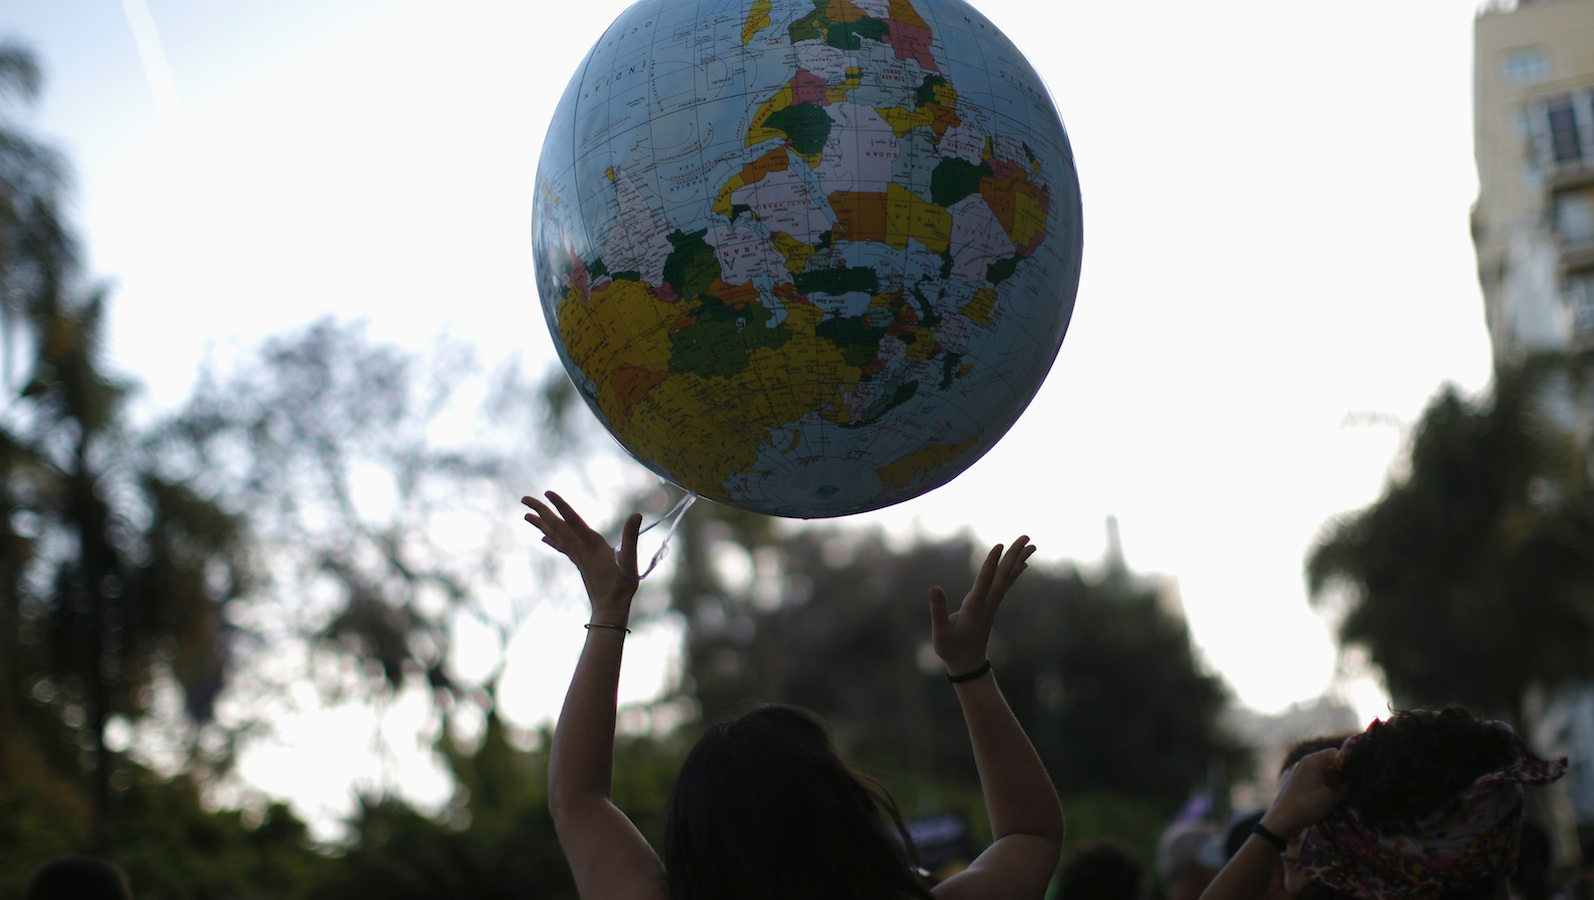 """Ana Navarro, 33, plays with a giant inflatable balloon of planet Earth as she takes to the streets during a protest march marking the first year anniversary of Spain's Indignados (Indignant) movement in Malaga, southern Spain May 12, 2012. Dubbed """"los indignados"""" (the indignant), the movement which spawned similar protests worldwide prepare to occupy Spanish streets for the whole weekend on the first anniversary of the 15M movement in a renewed protest over  government austerity measures, banks, politicians, economic recession, and the highest unemployment in the eurozone. REUTERS/Jon Nazca (SPAIN - Tags: ANNIVERSARY CIVIL UNREST POLITICS SOCIETY BUSINESS EMPLOYMENT) - RTR31Z15"""